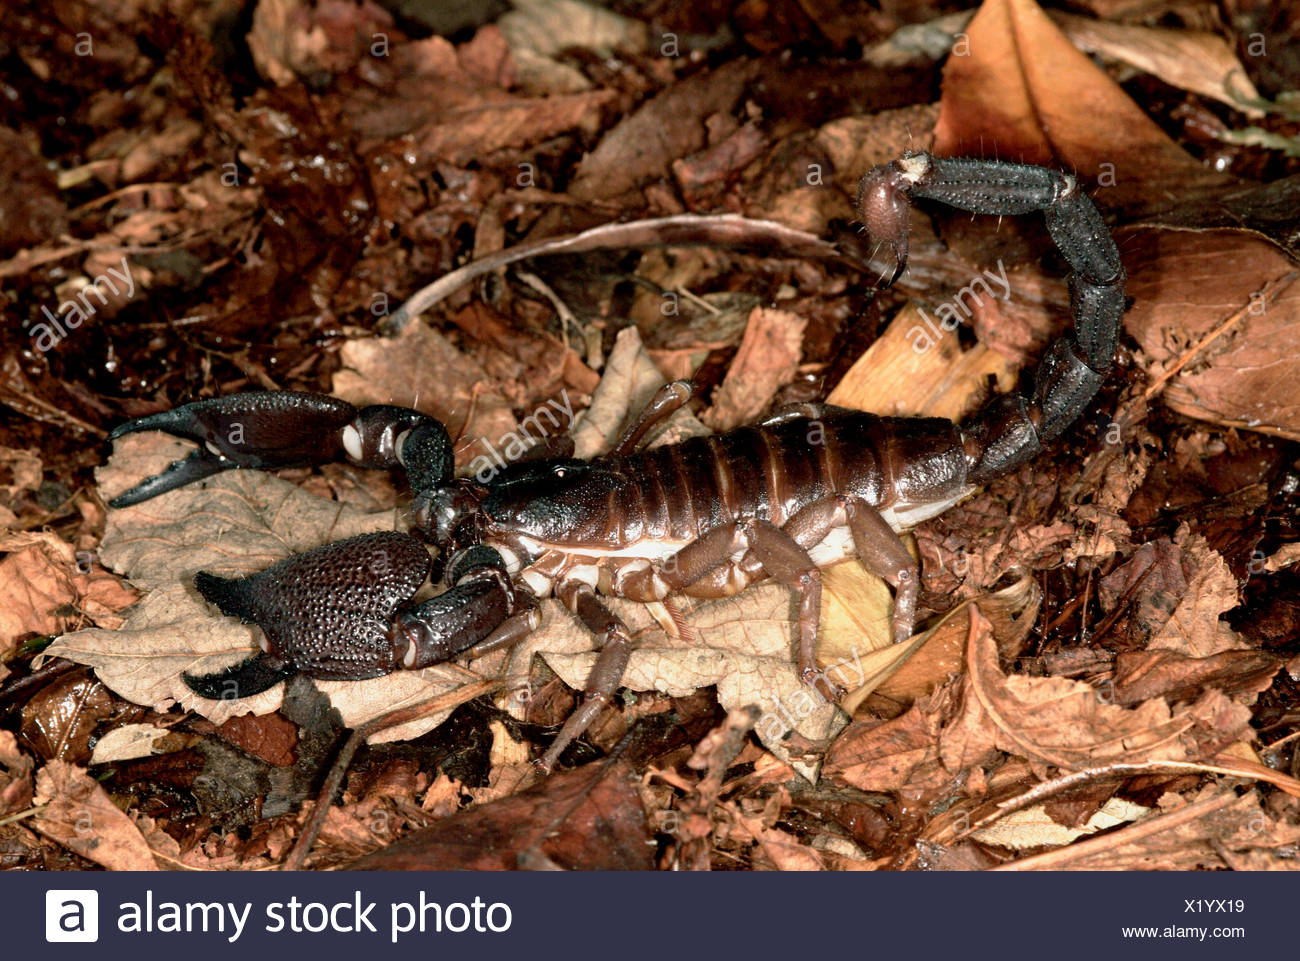 Giant Indian black scorpion, Heterometrus swammerdami, on forest floor, world's largest scorpion at 9 inches long fully grown Stock Photo